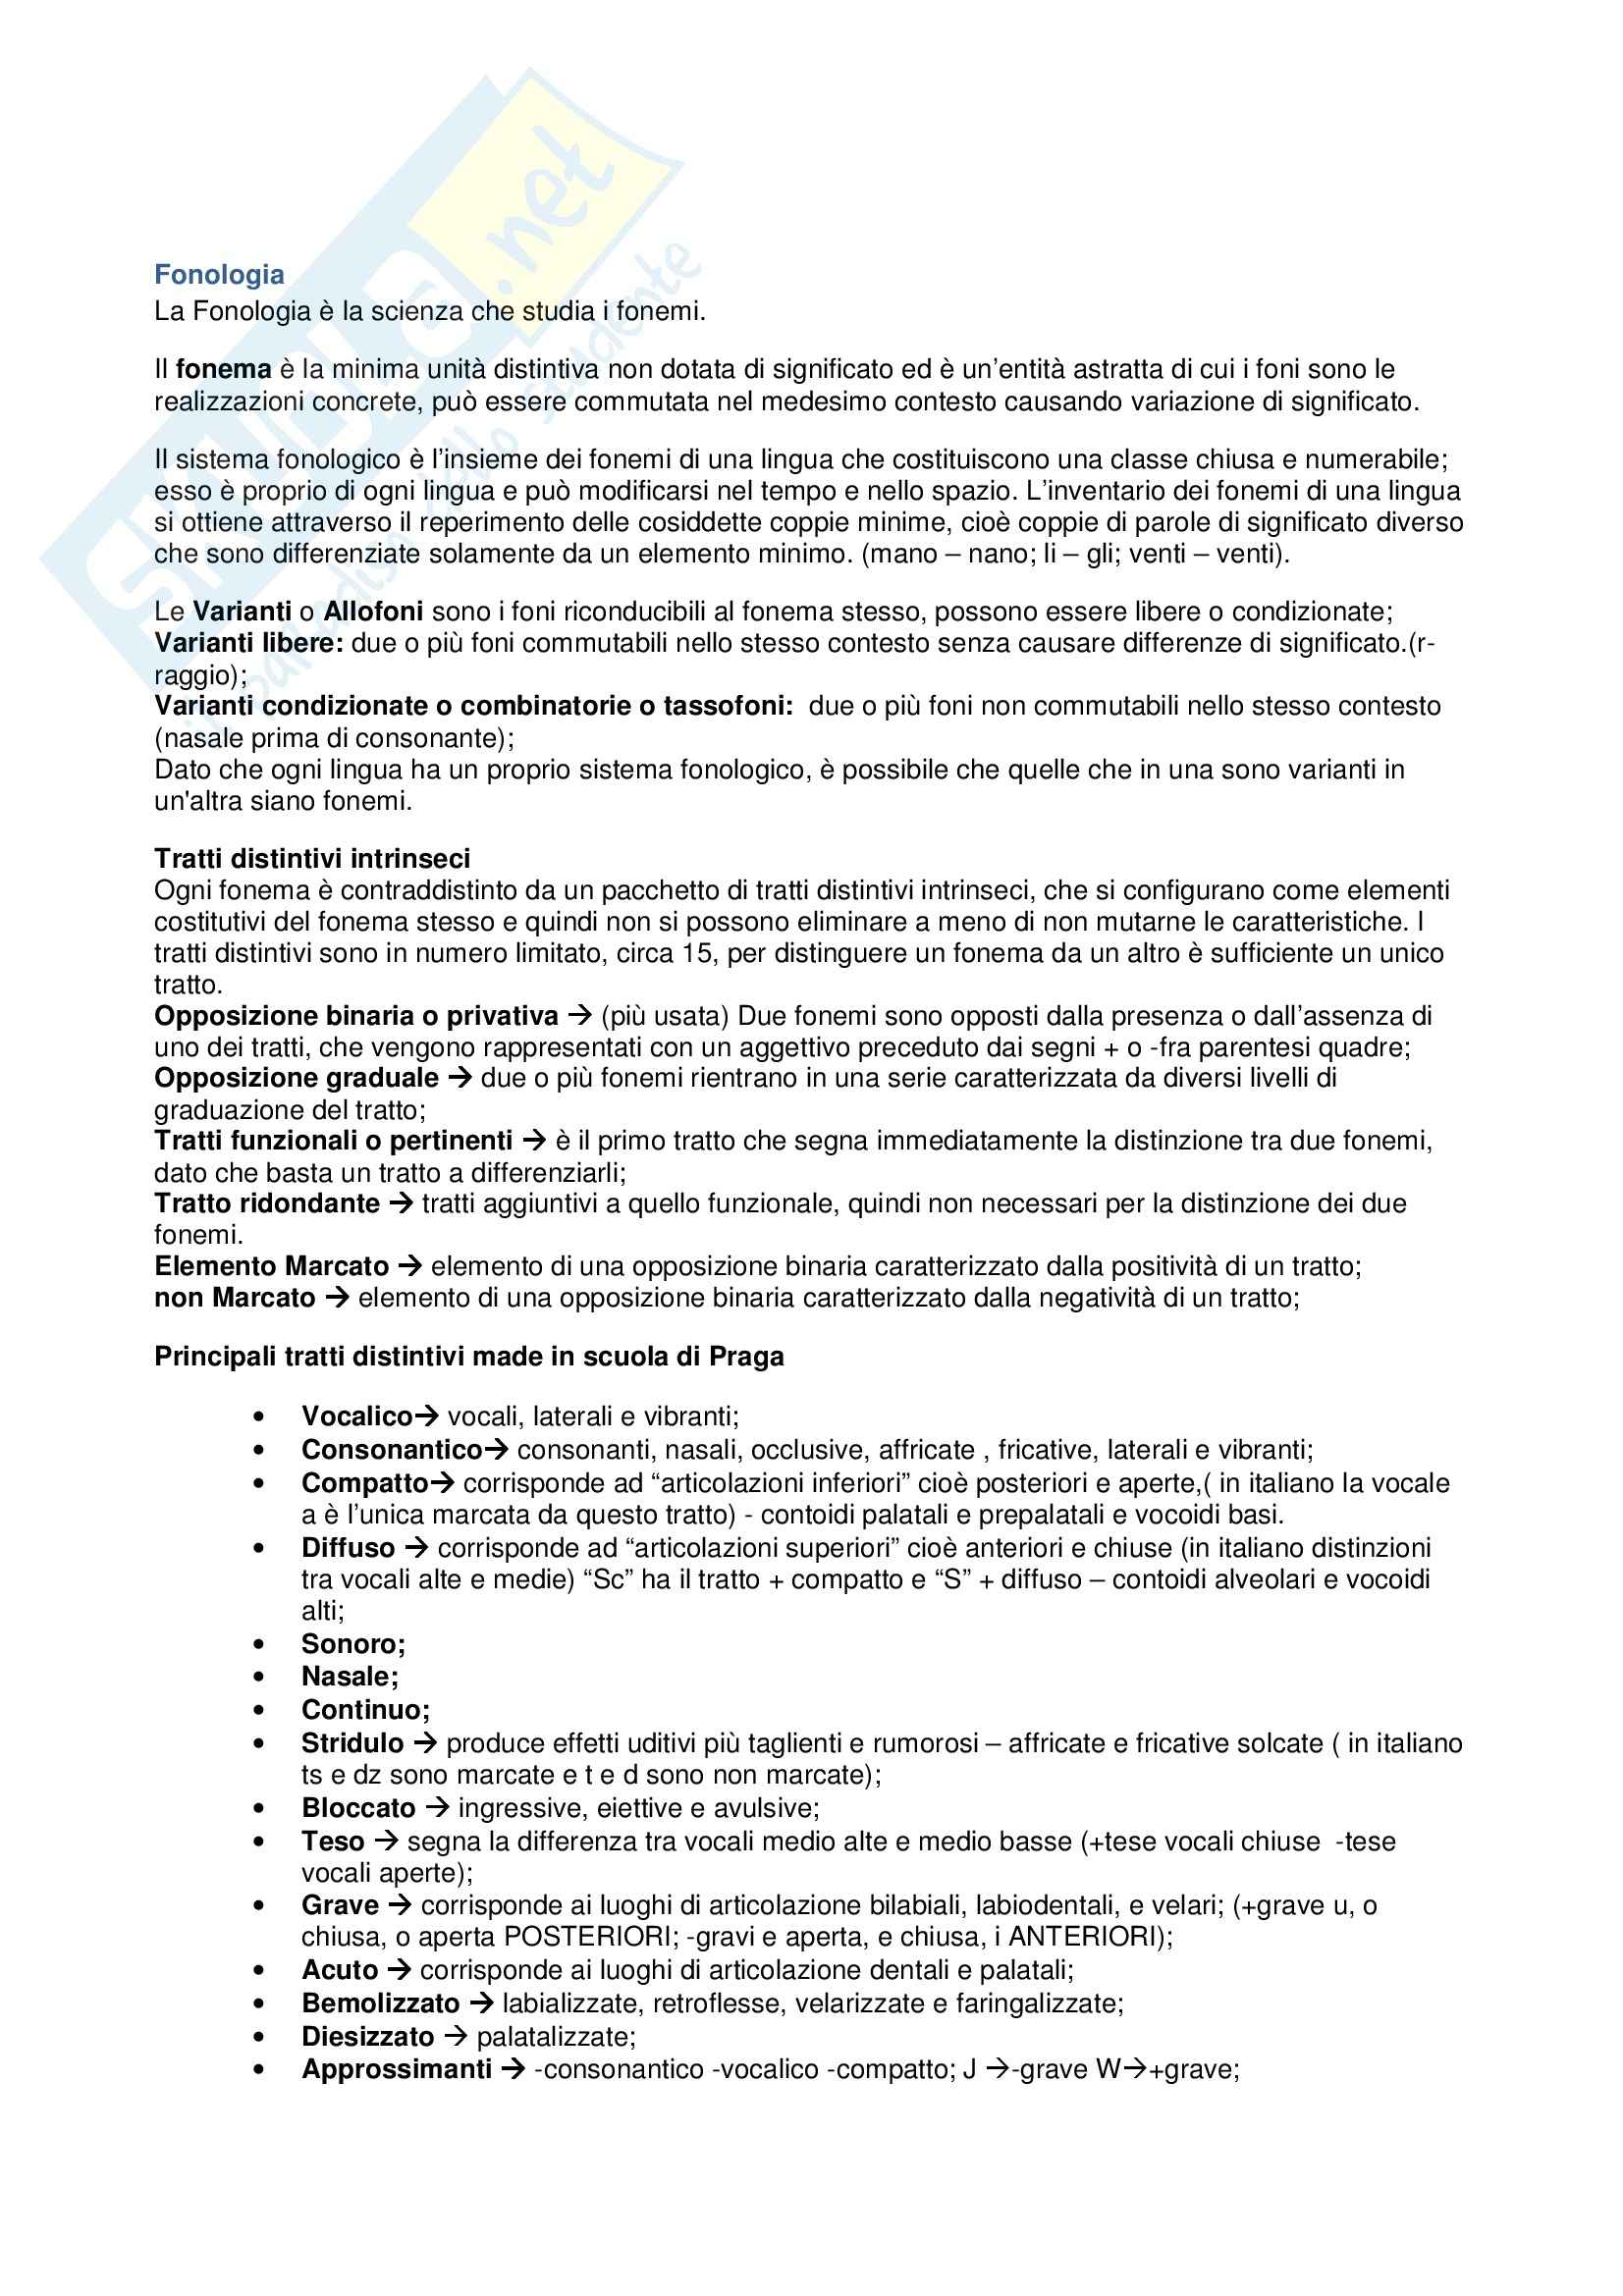 Fonologia - Appunti Pag. 1